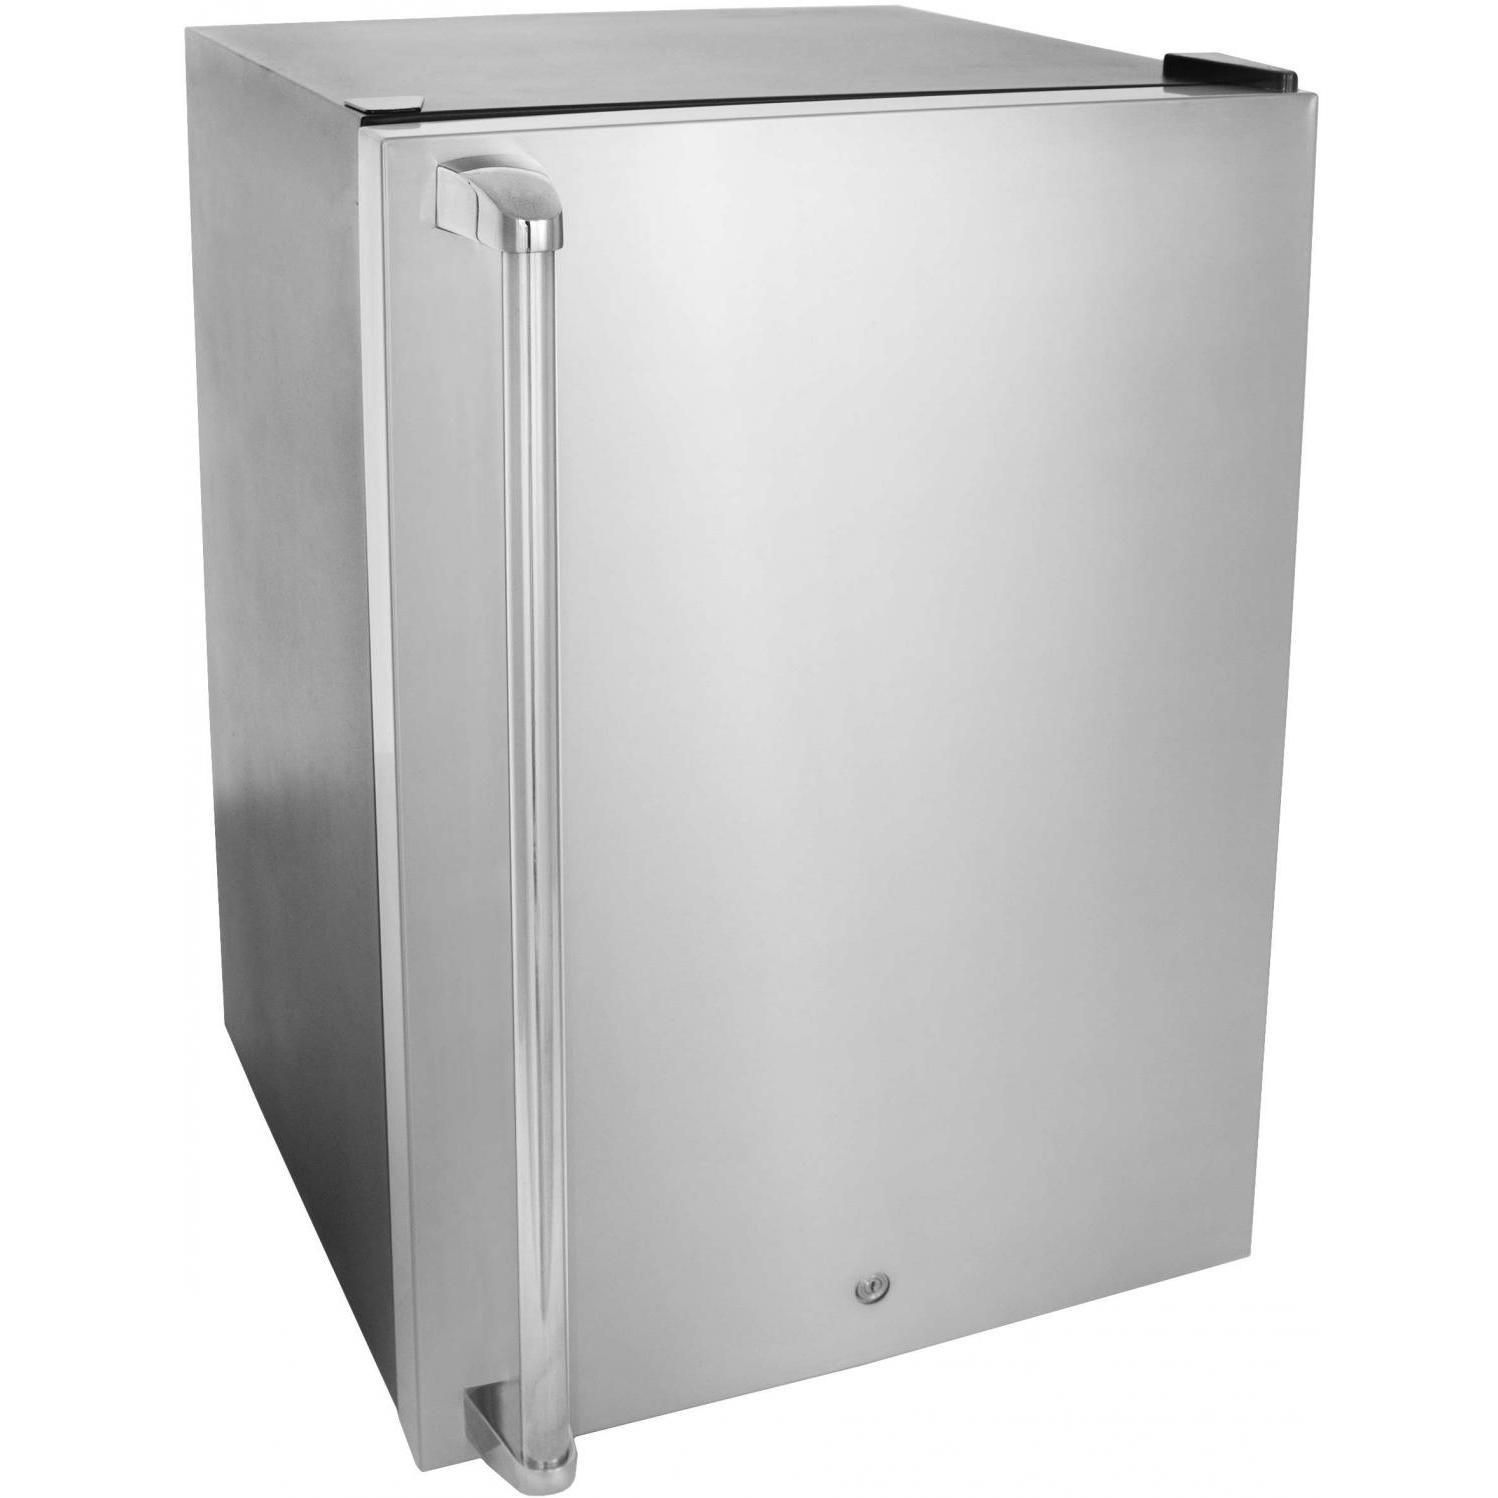 Ft Compact Refrigerator With Towel Bar Handle  Stainless Steel